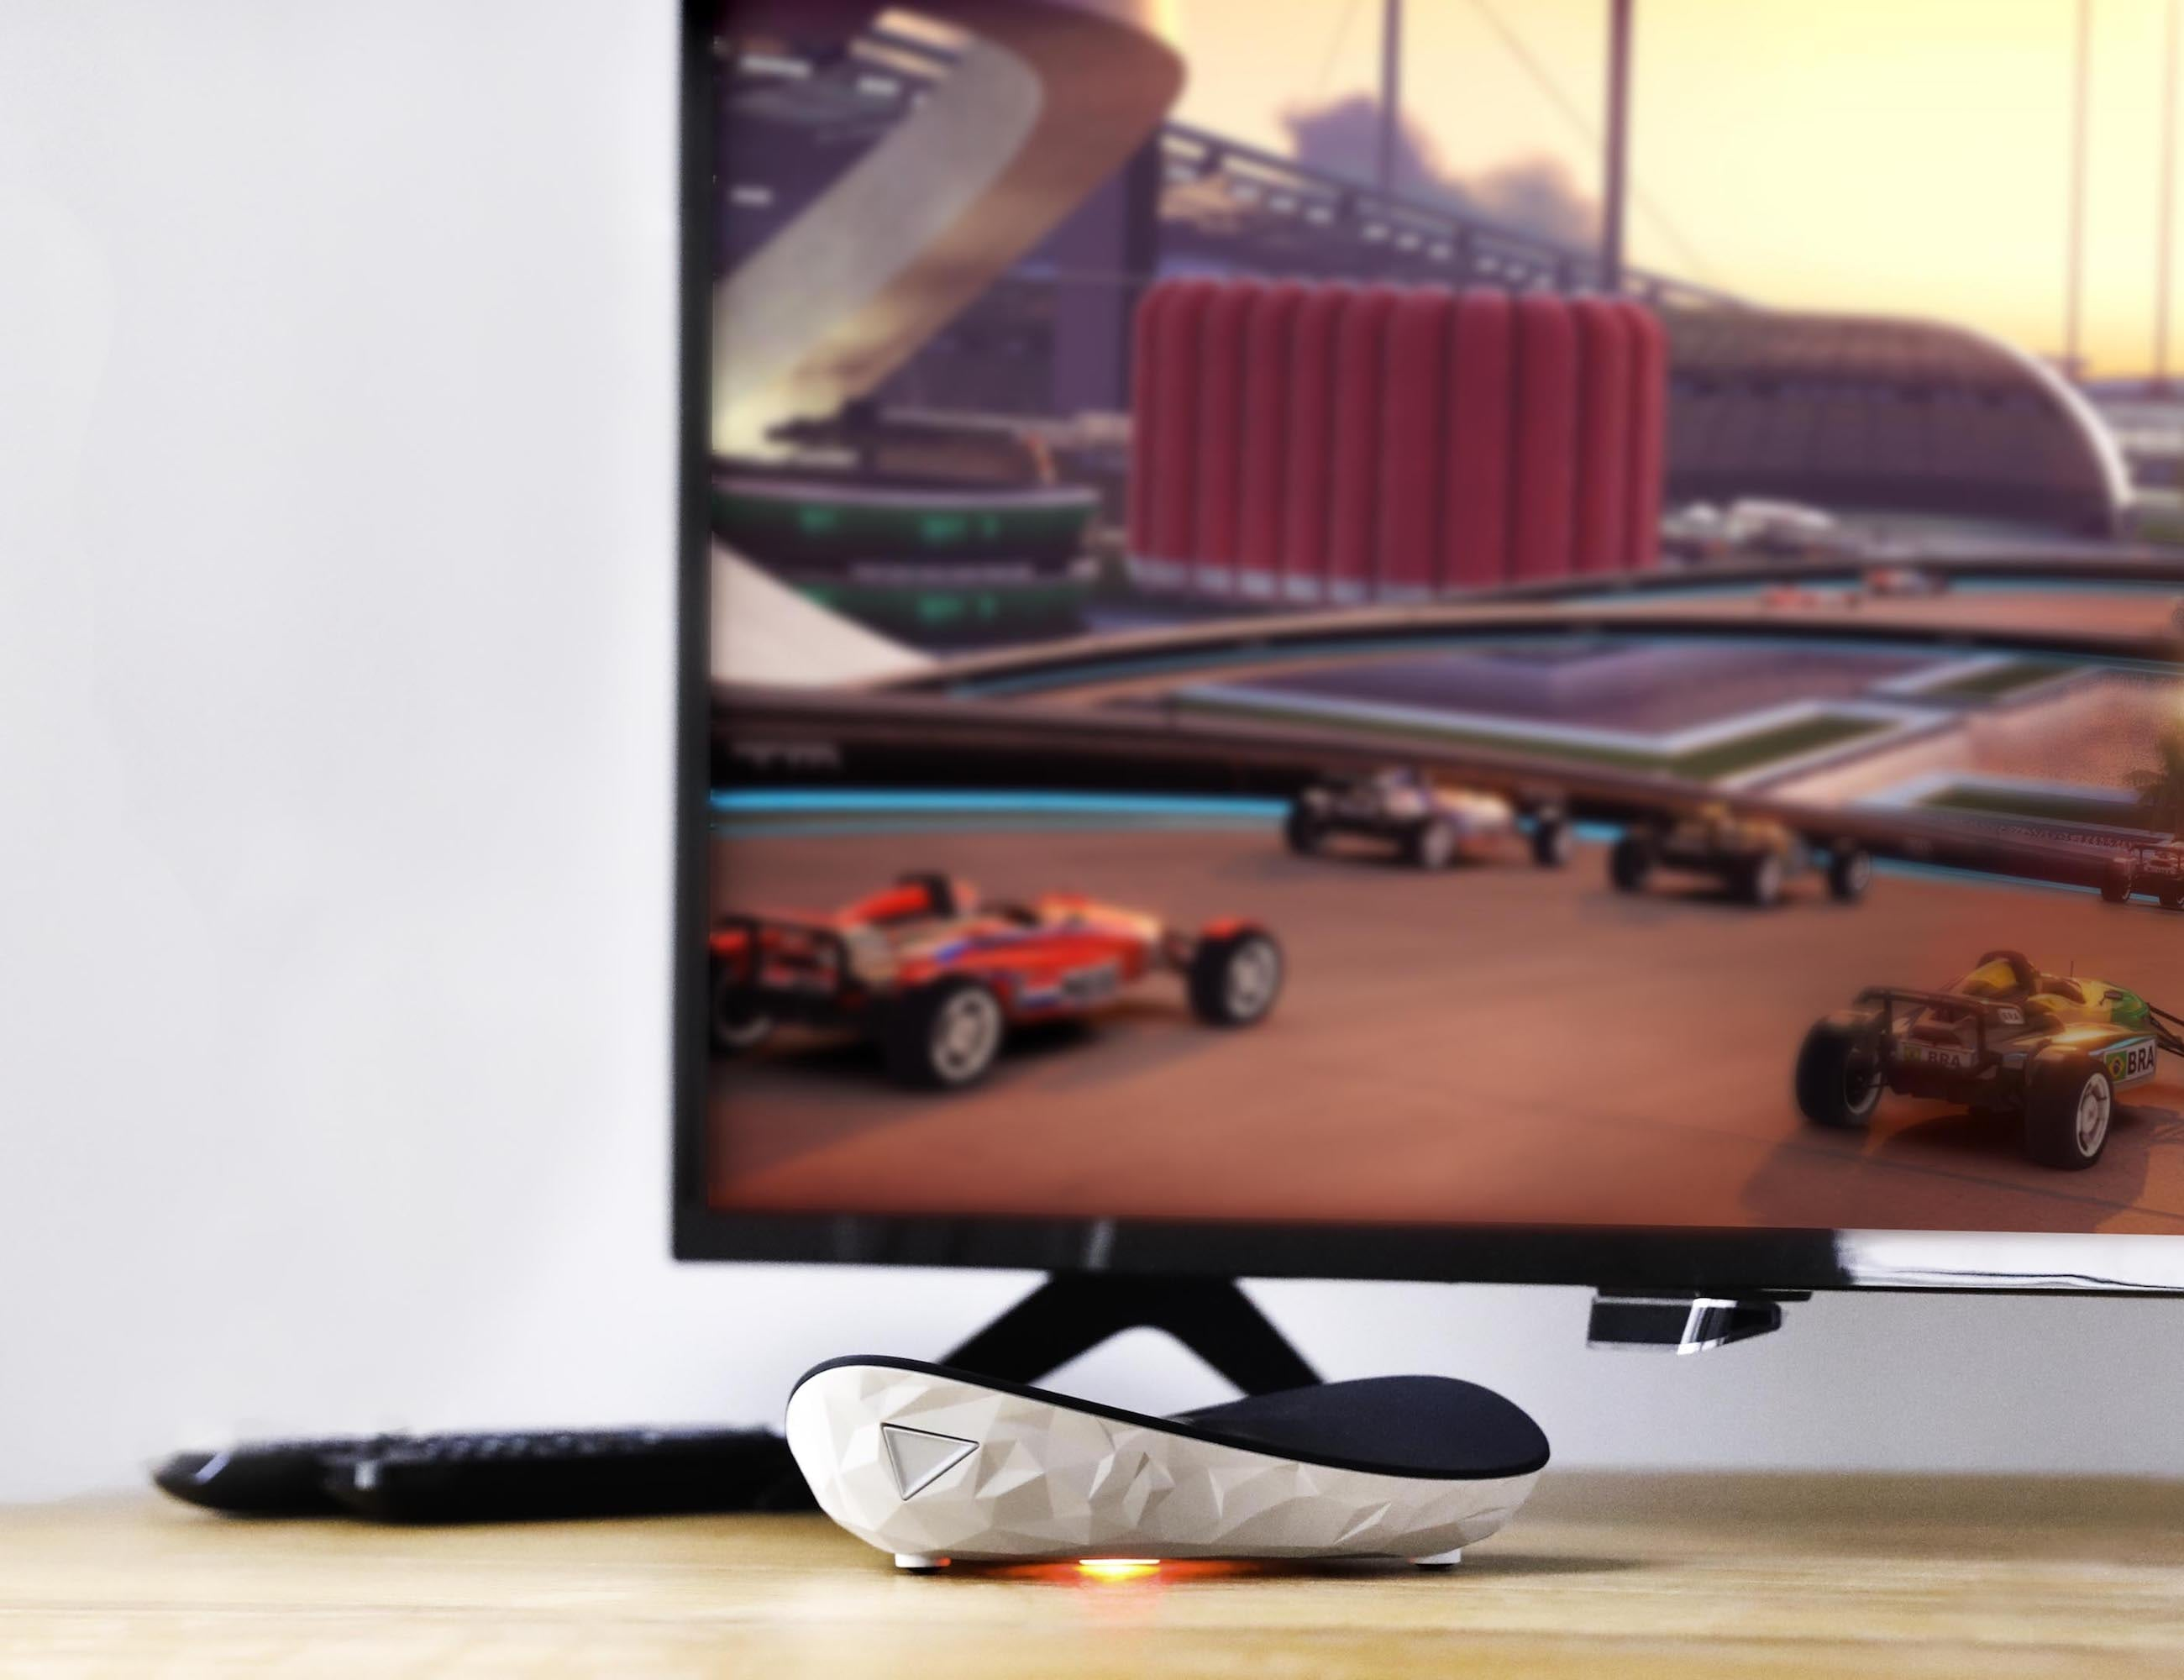 Shadow Ghost Game Streaming Box lets you stream content on your TV